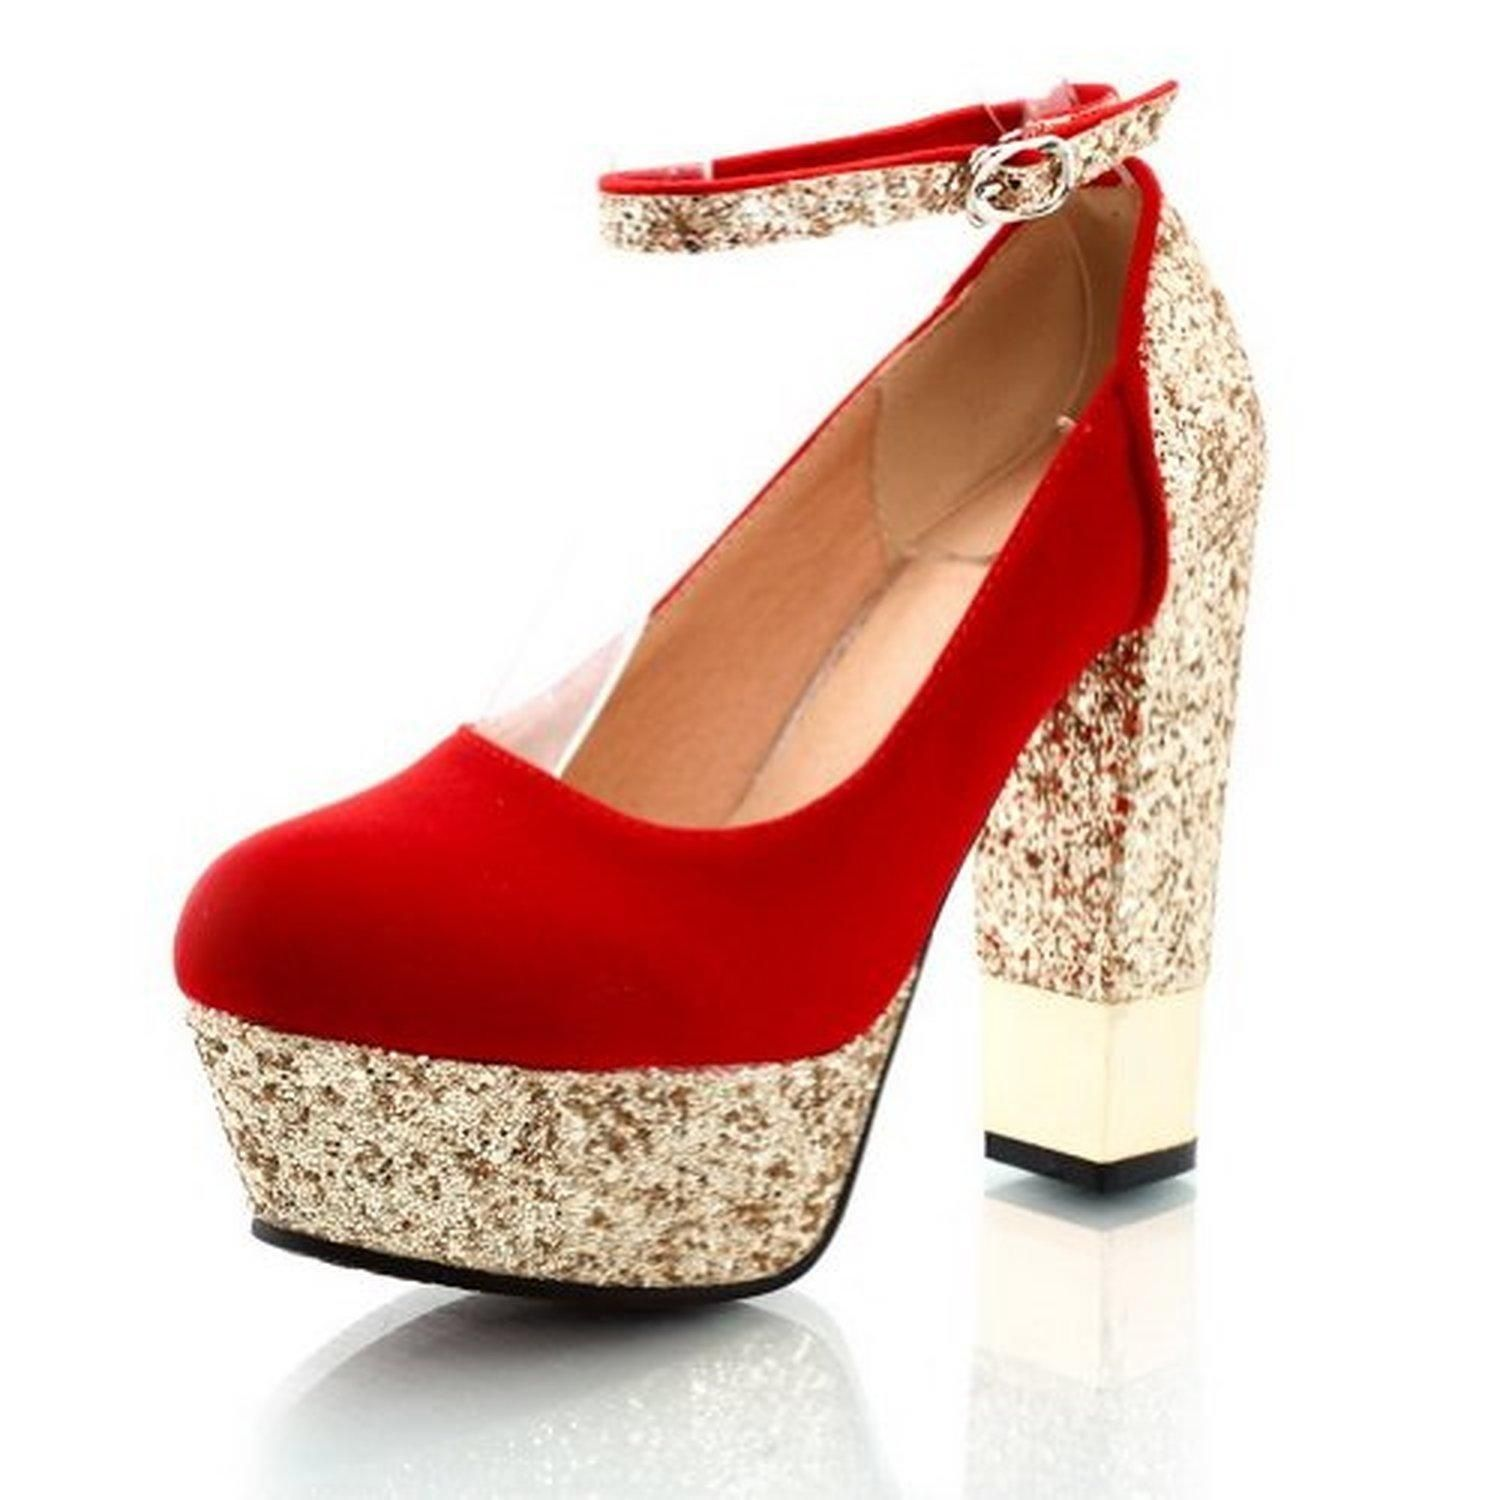 88f9bc65965 Maymeenth Womens Closed Round Toe High Heel Chunky Platform PU Mary Jane  Pumps whith Sequins